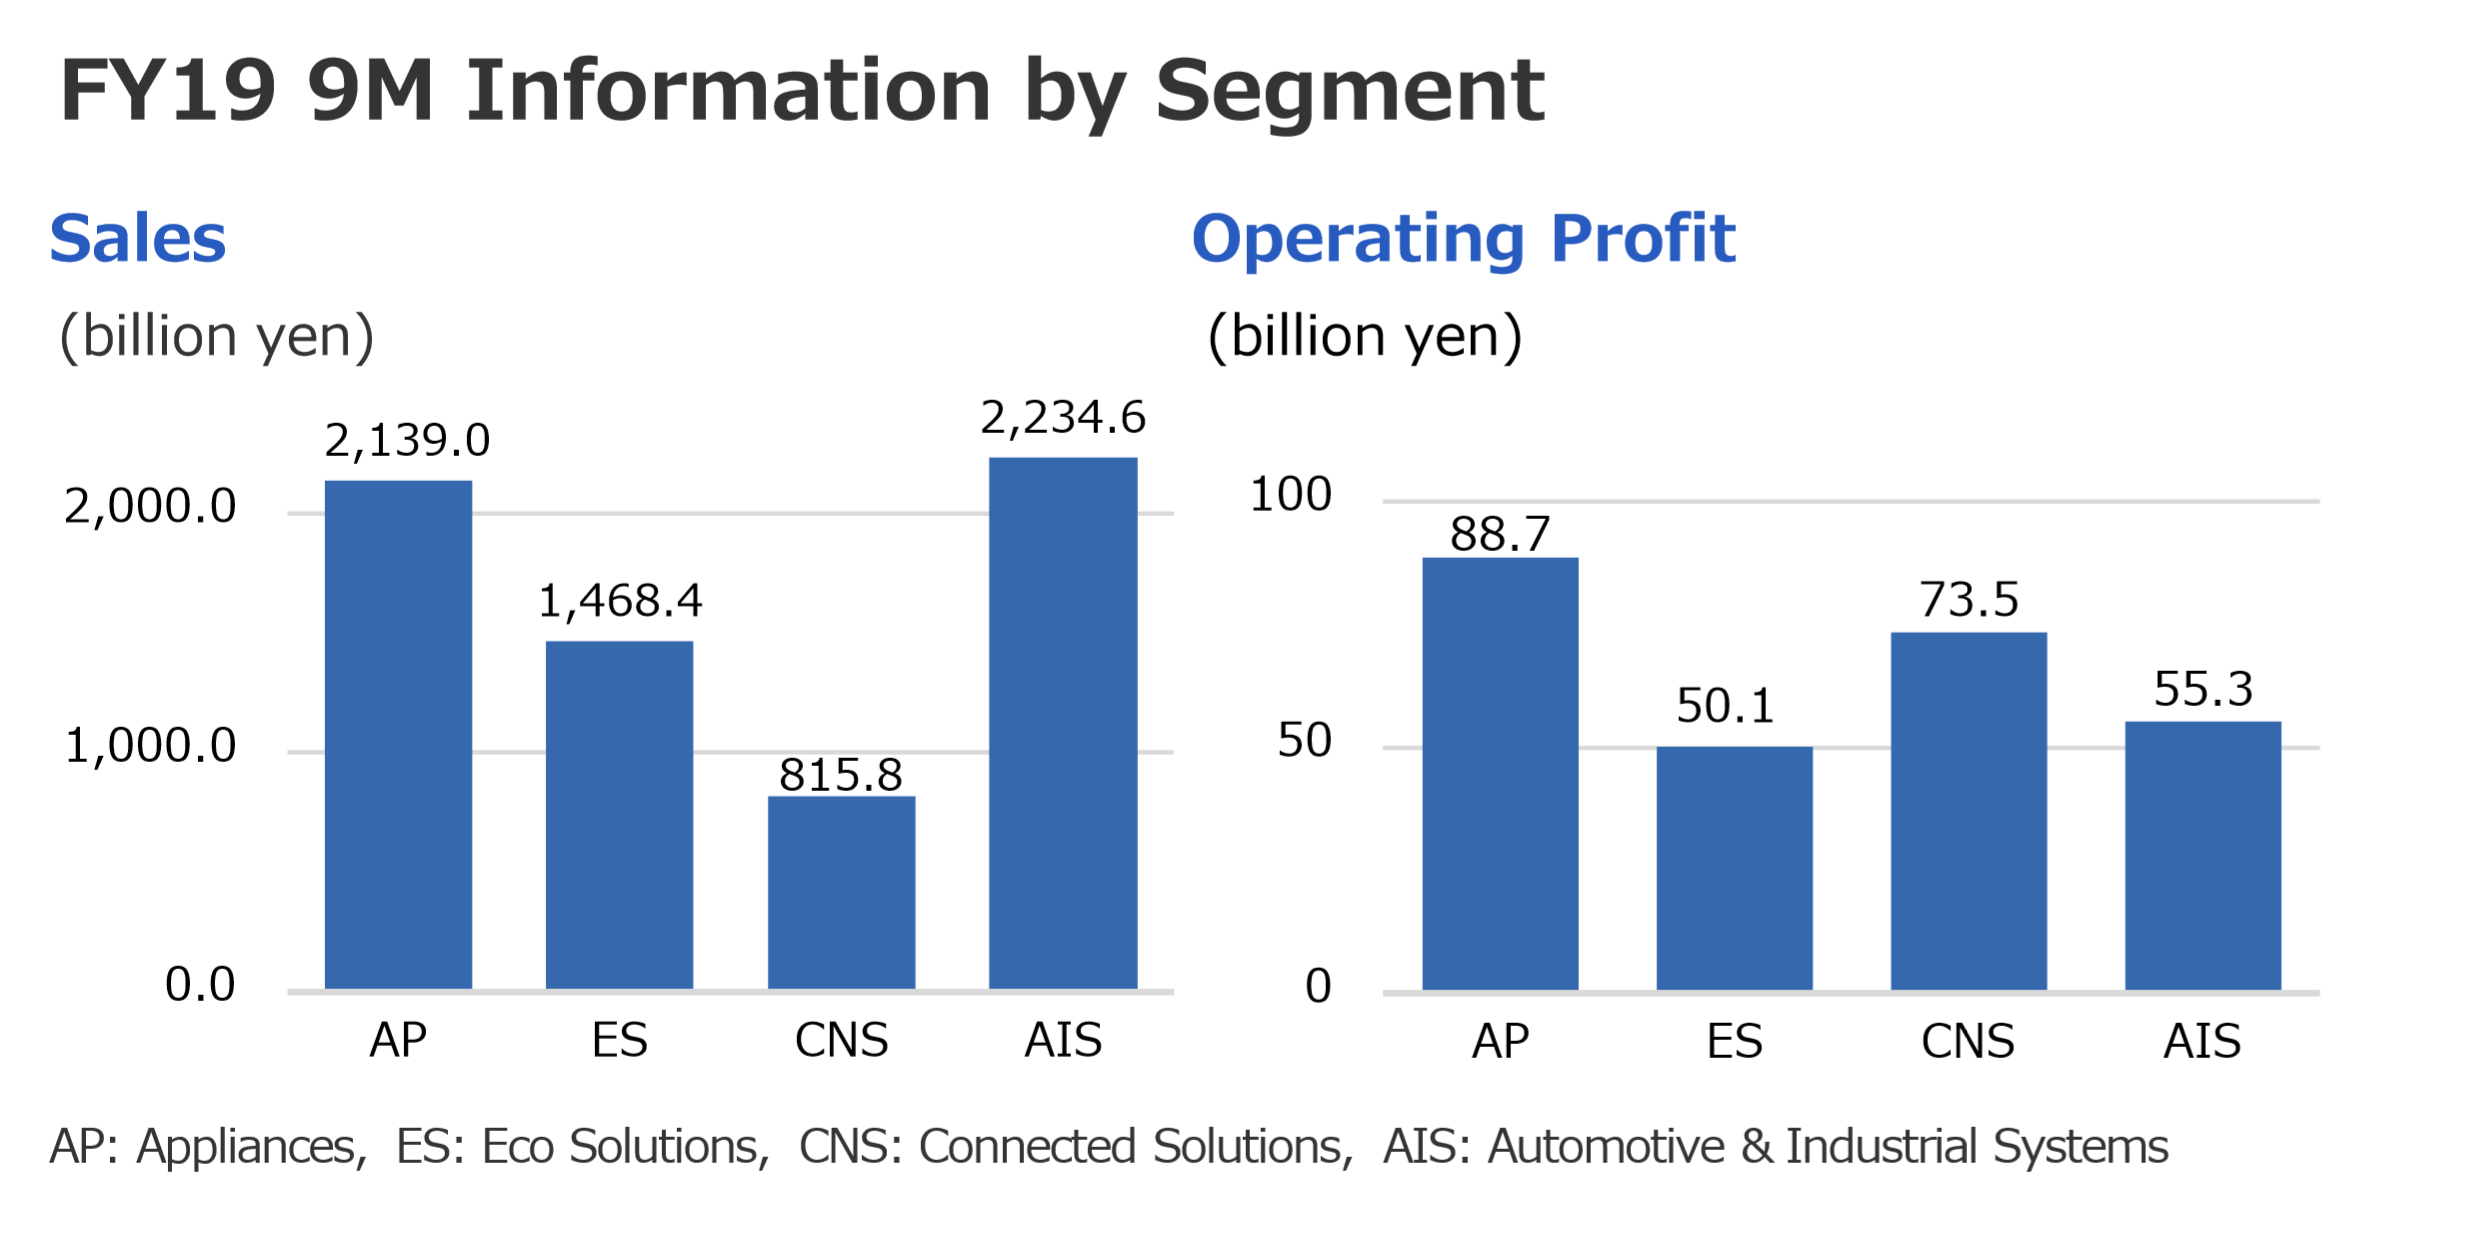 FY19 9M Information by Segment